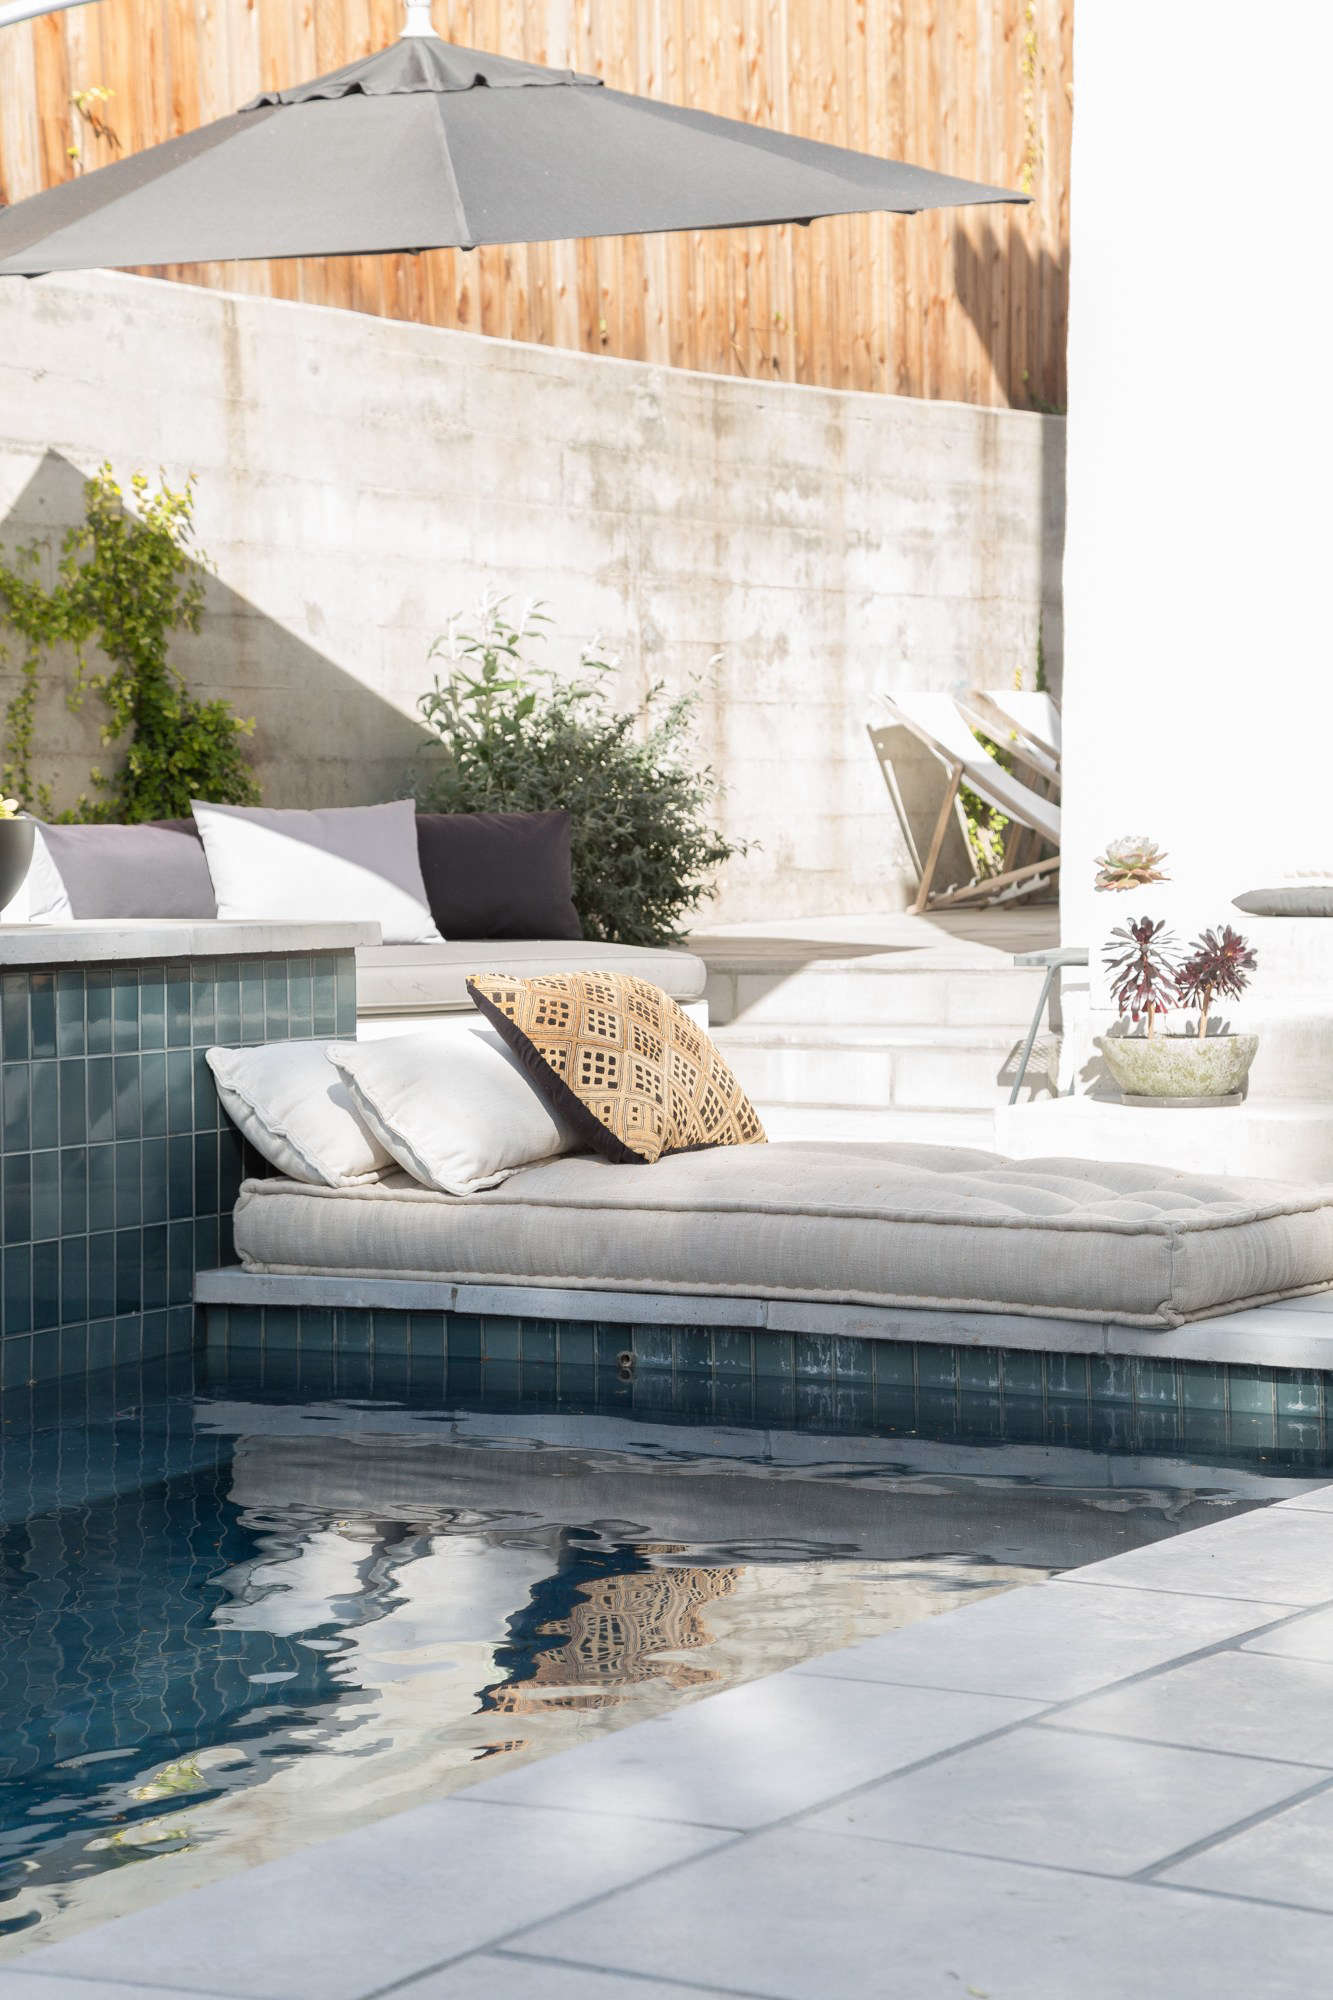 Another clever use of the hardscaping: Alow cushion and pillows are positionedagainst the side of the pool to create aluxurious lounge spot, no furniture needed.